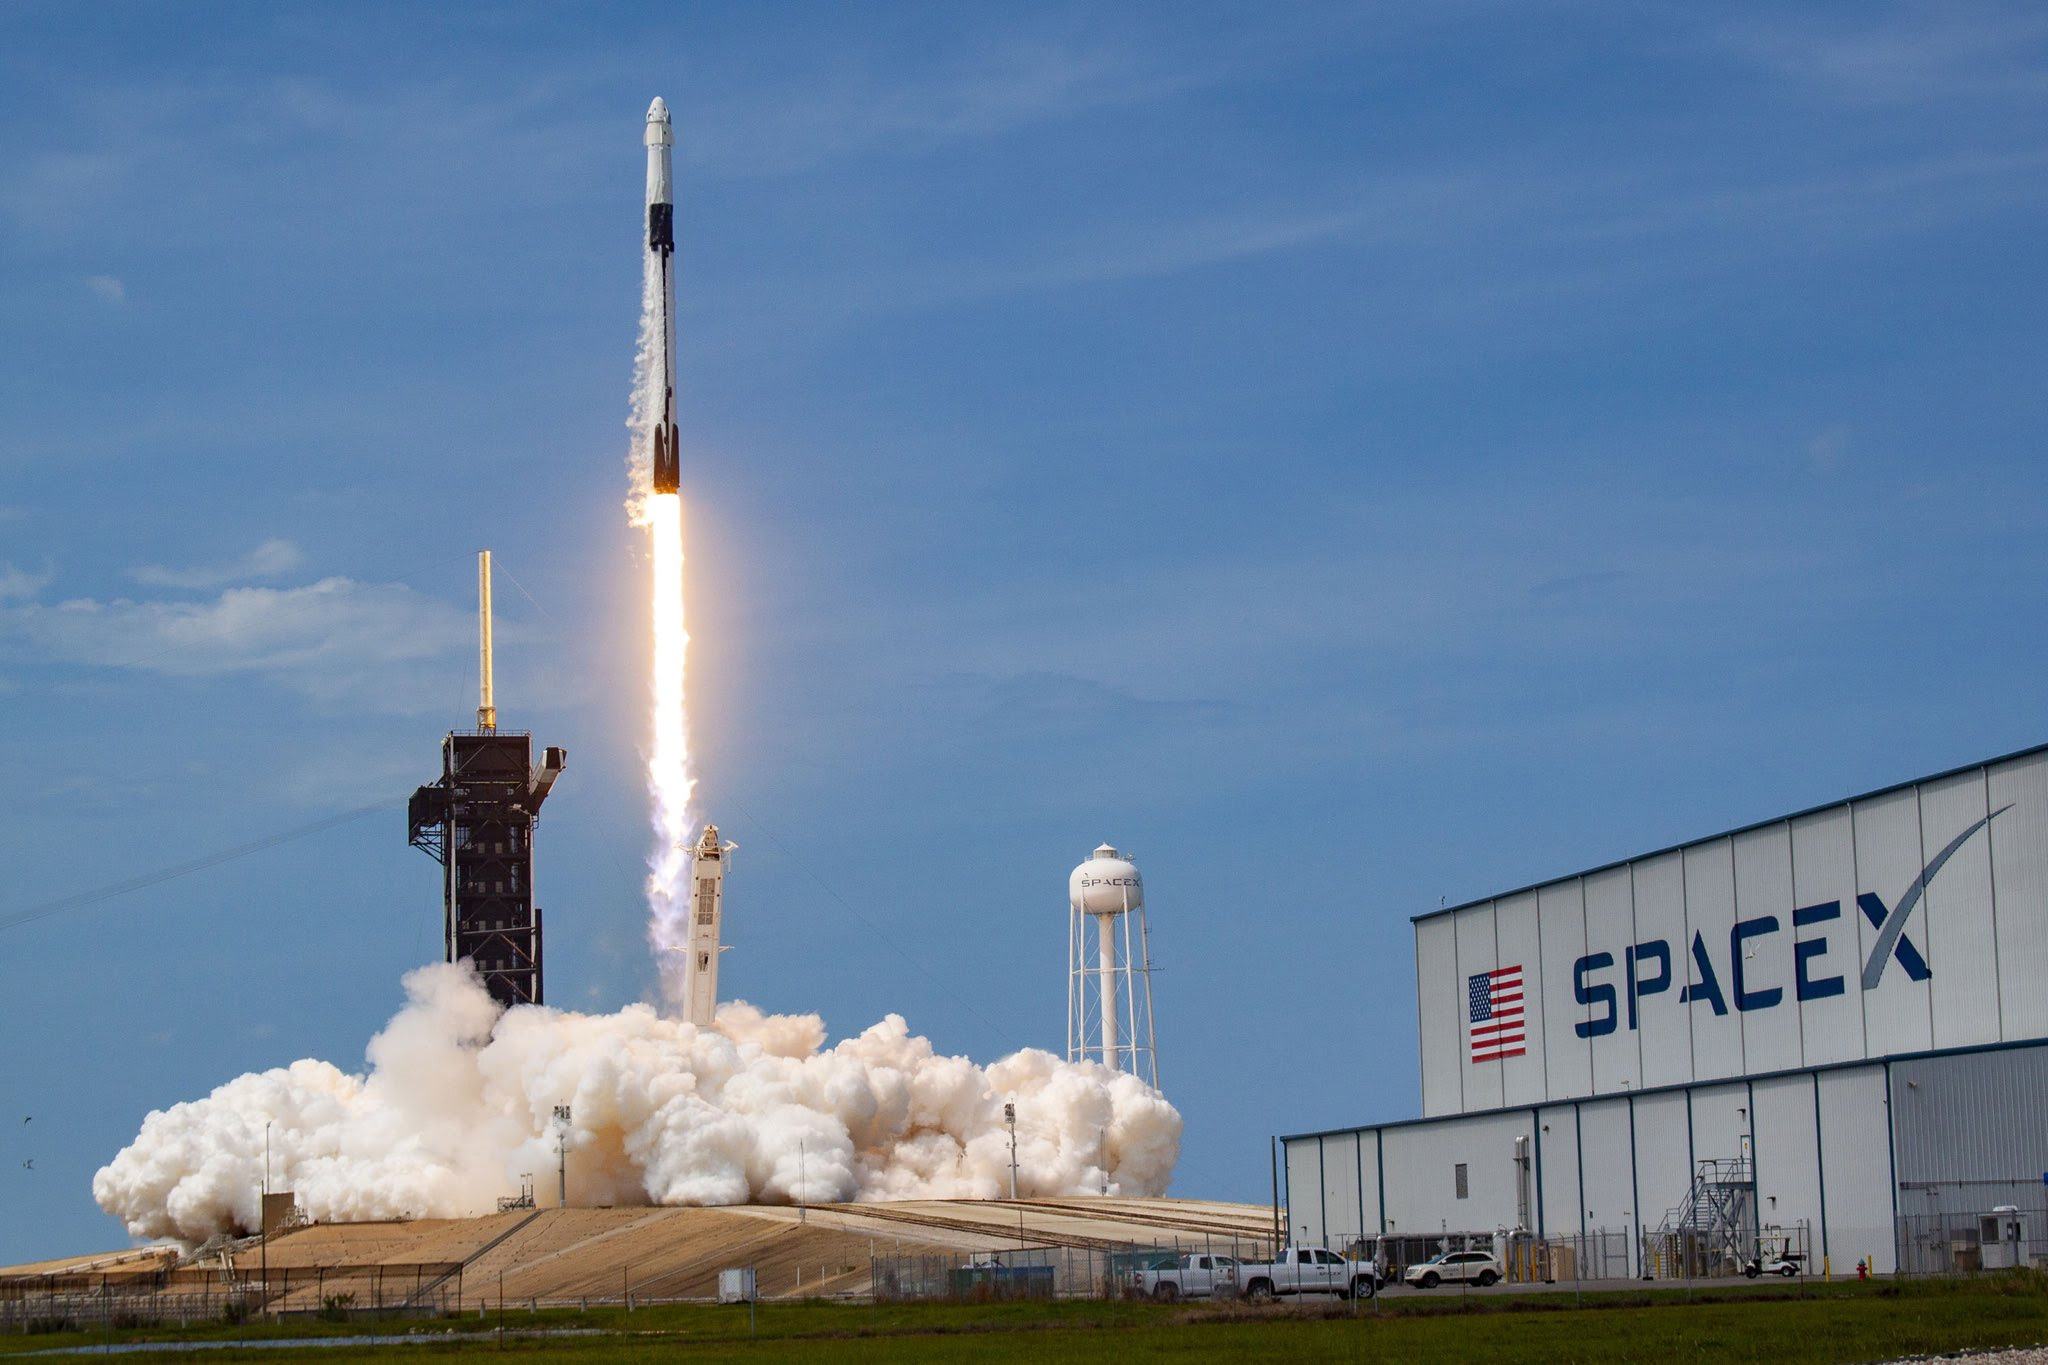 With SpaceX's first astronaut launch, a new era of human spaceflight has dawned